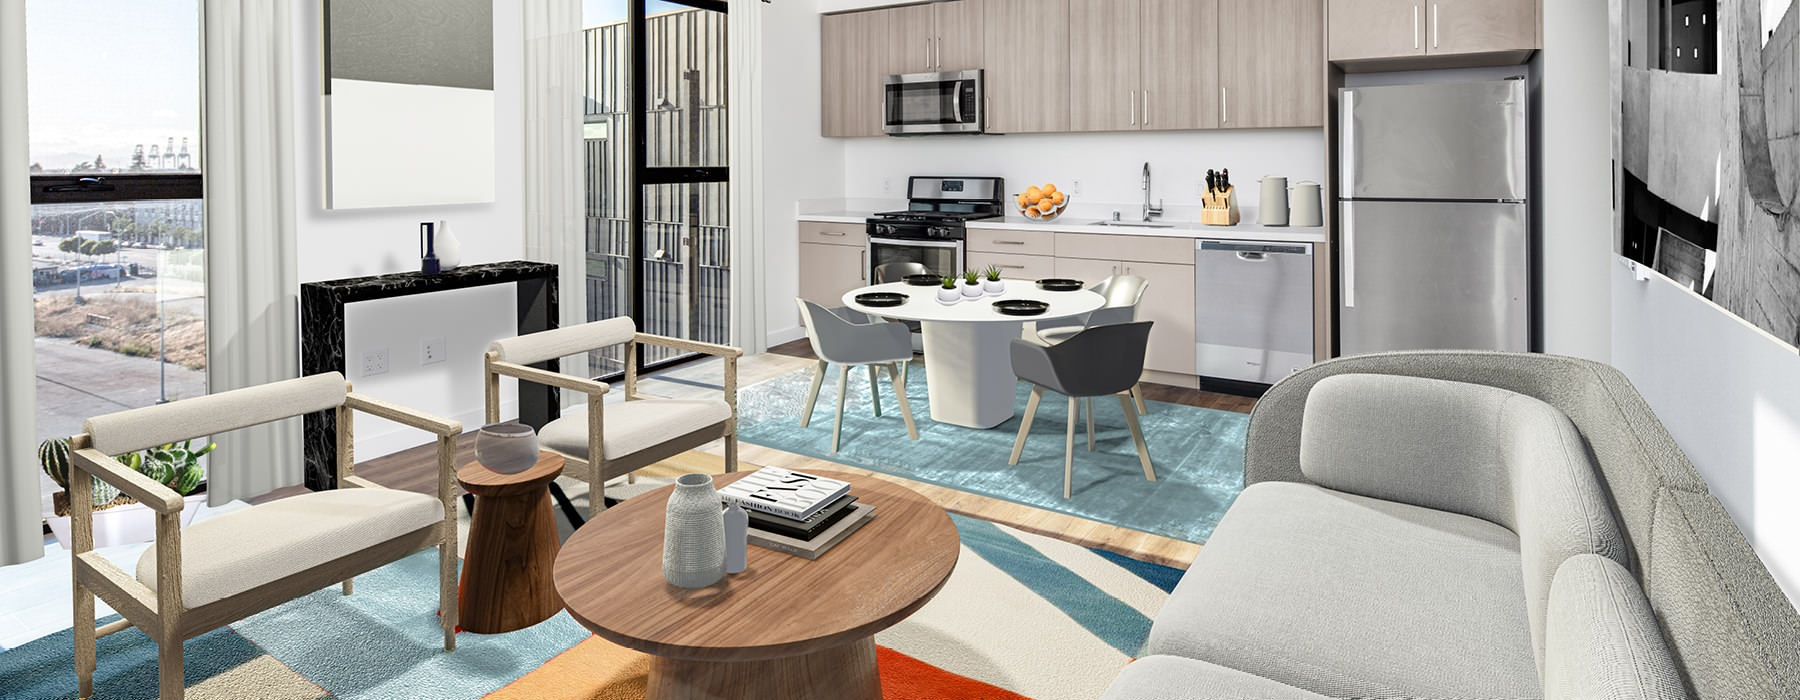 living and dining area rendering